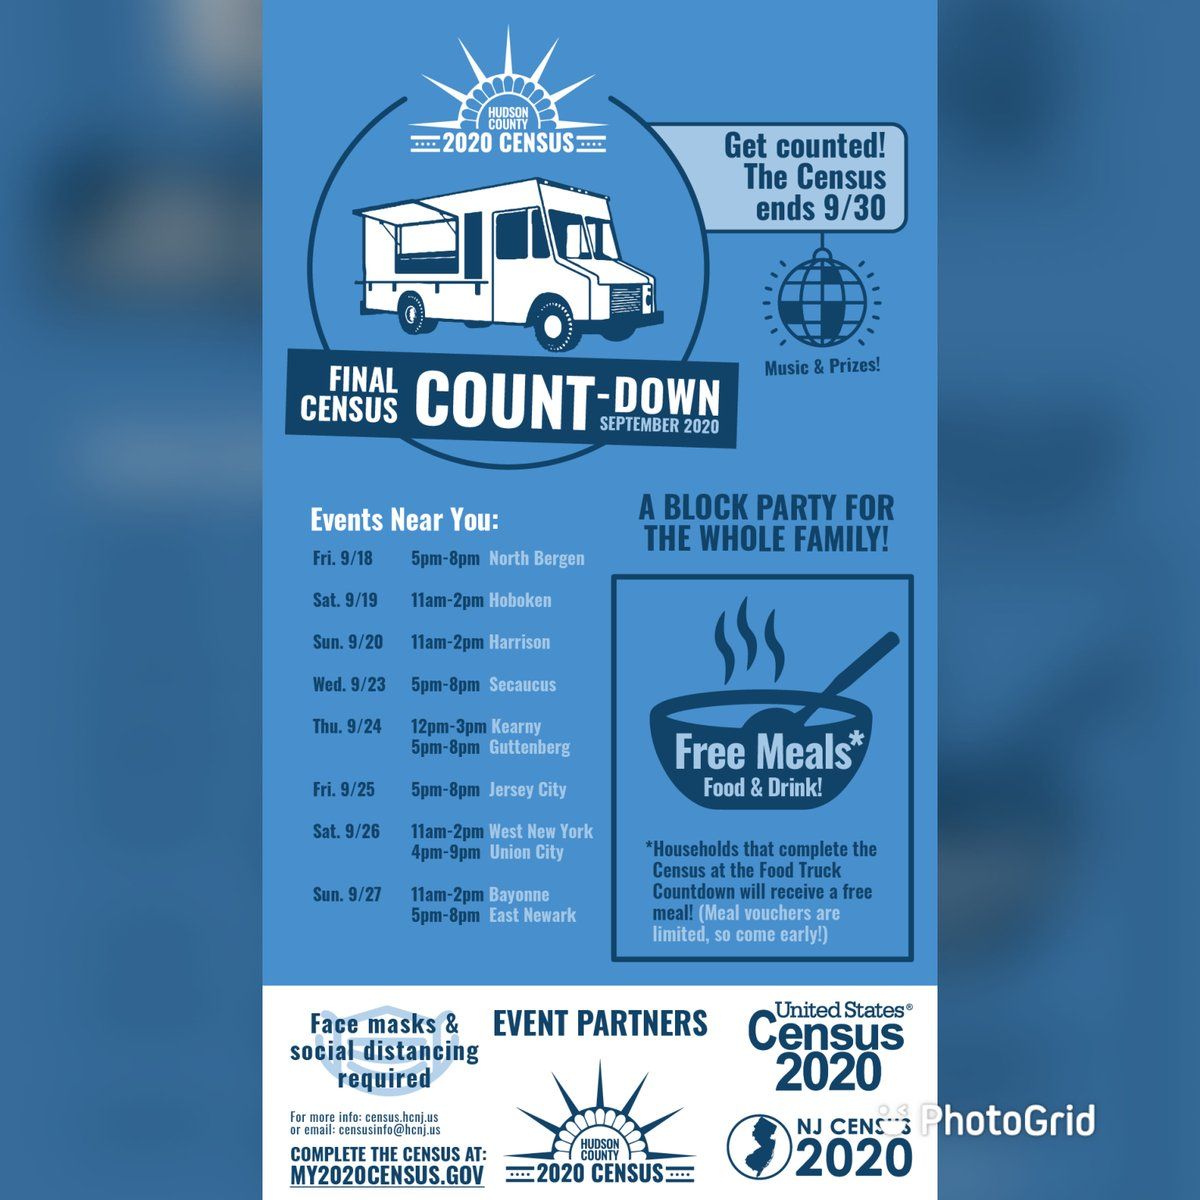 This weekend enjoy a free meal after you fill out the 2020 Census! Jersey City, Union City, West New York, Bayonne and East Newark--join us for a Final Count-Down Block Party in your community!